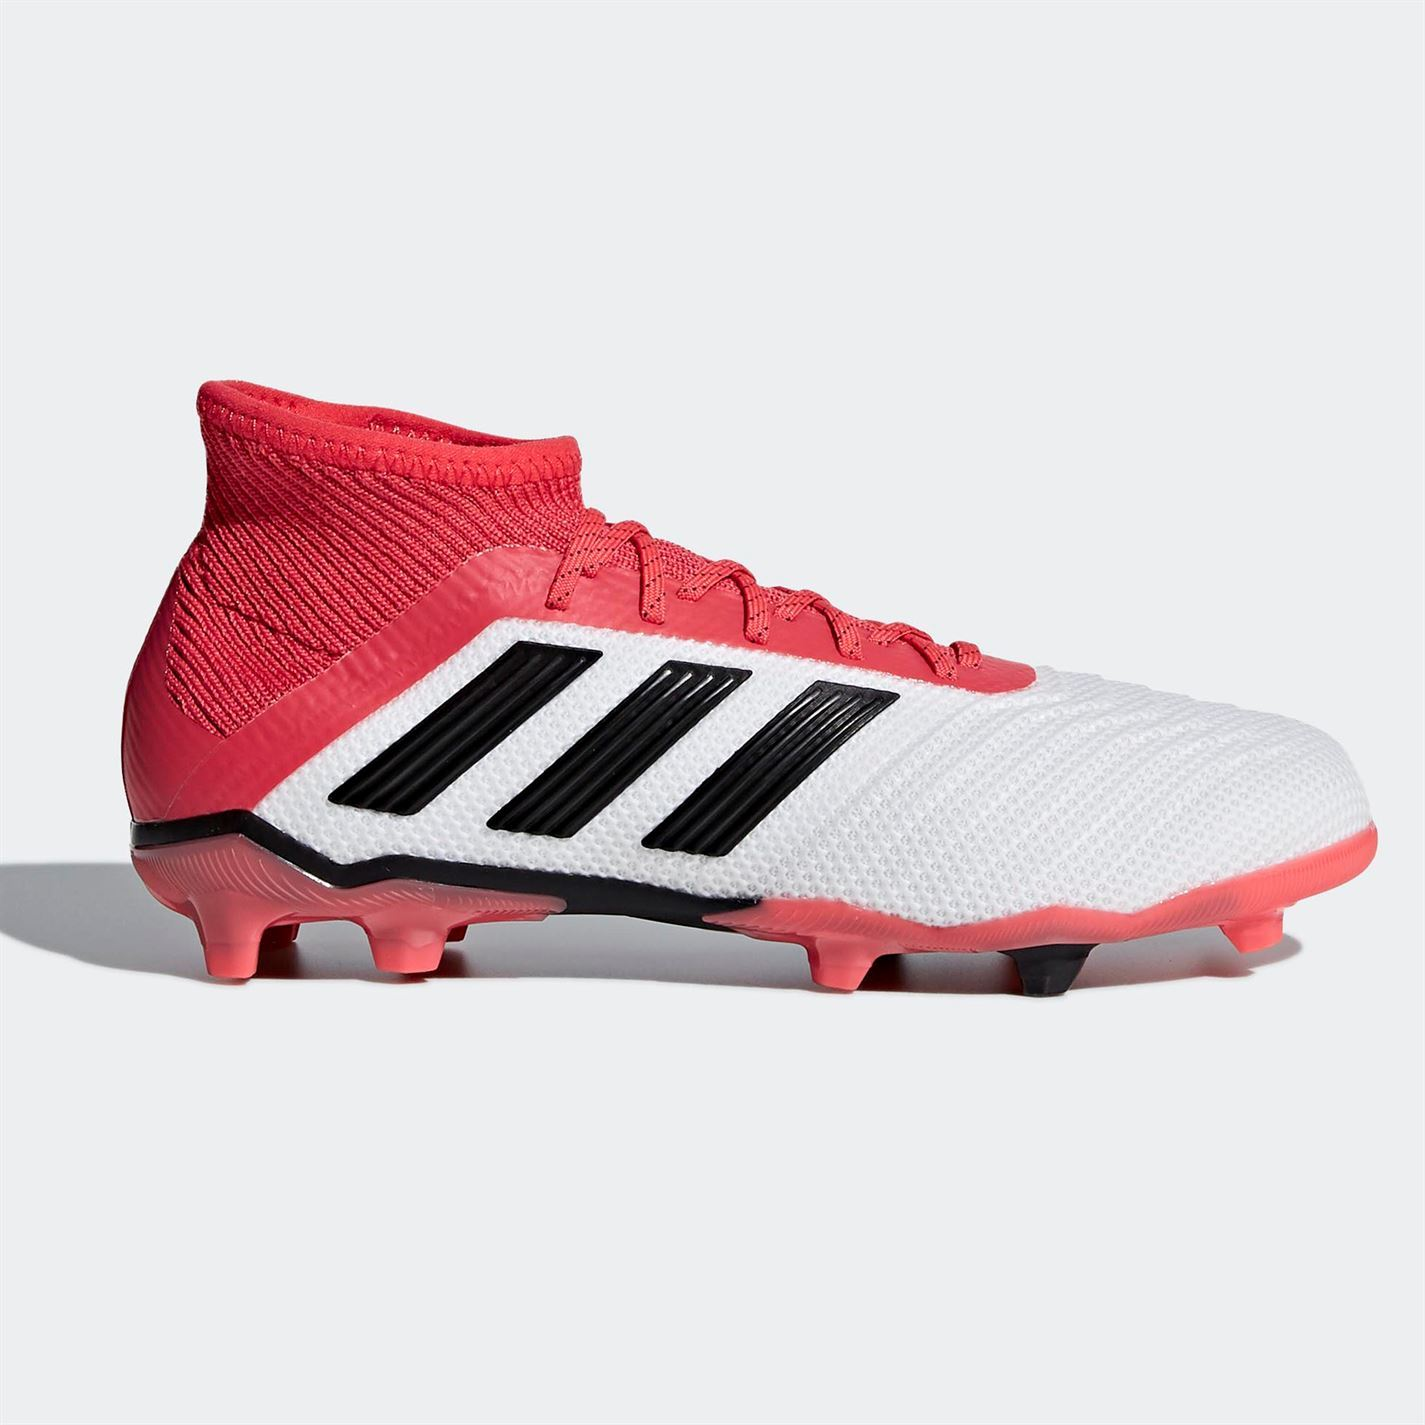 c1dc5269 adidas Predator 18.1 Firm Ground Football Boots Childs White Soccer Shoes  Cleats